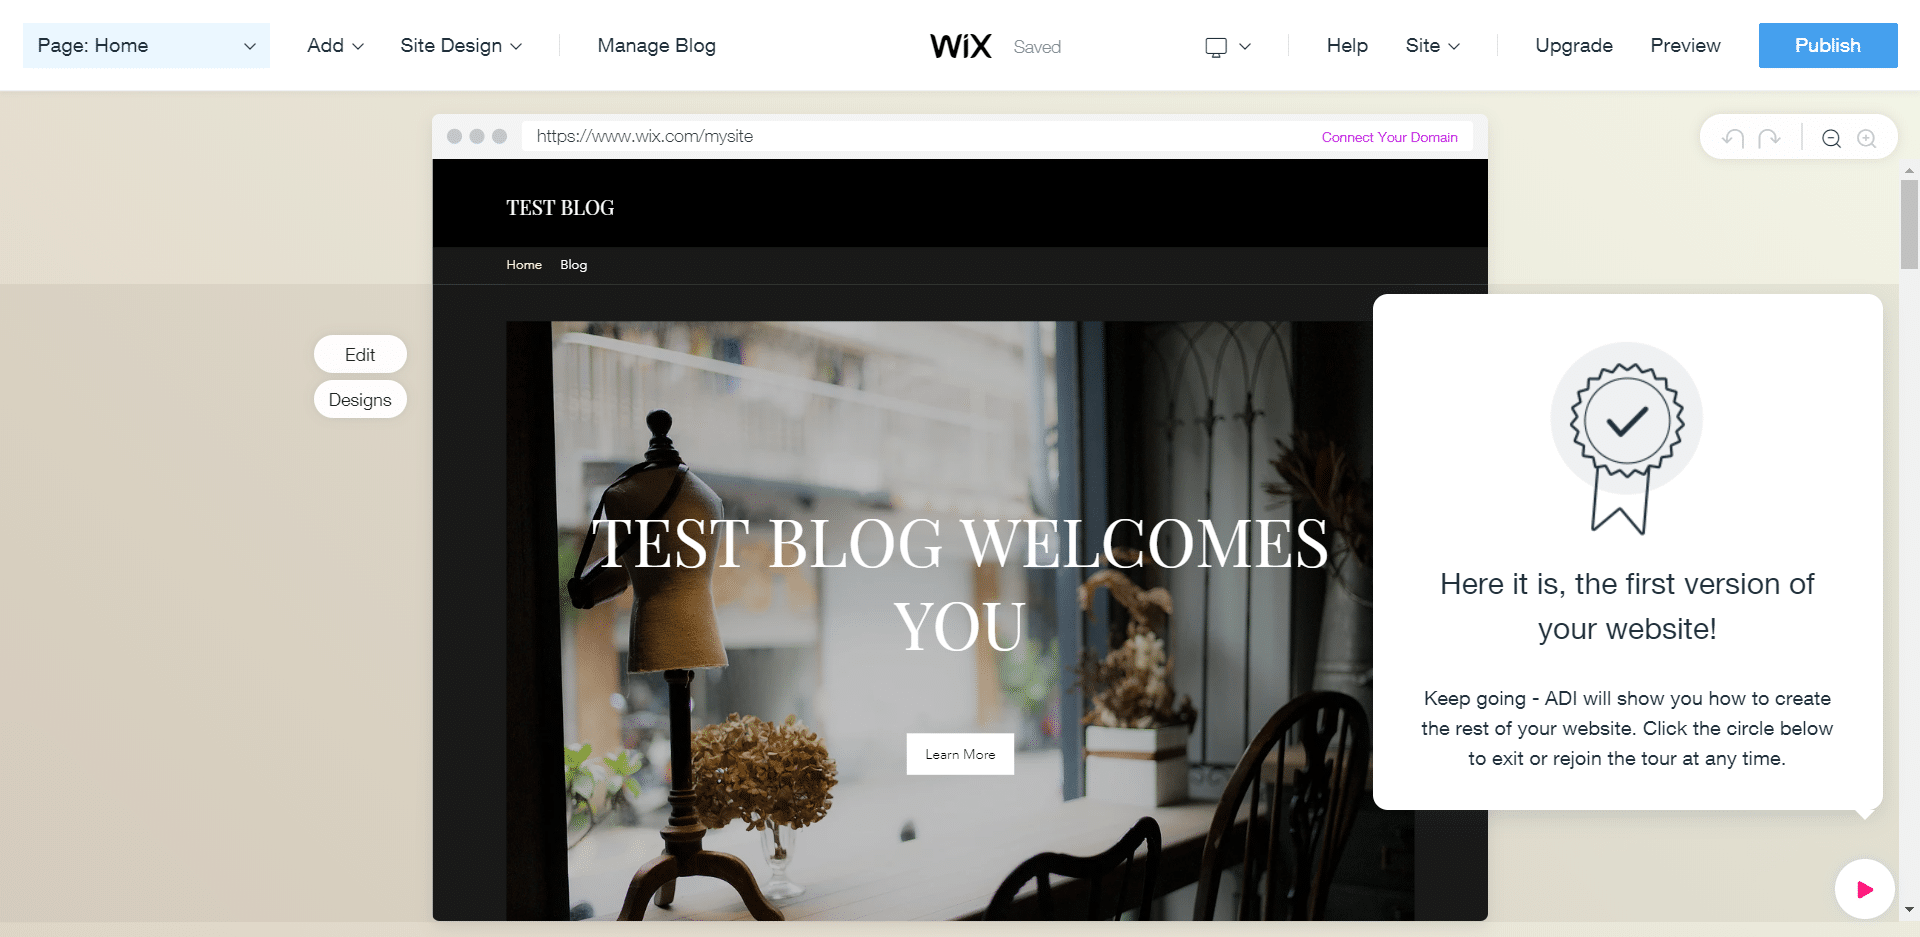 Creating a Site on Wix: Customizing Elements